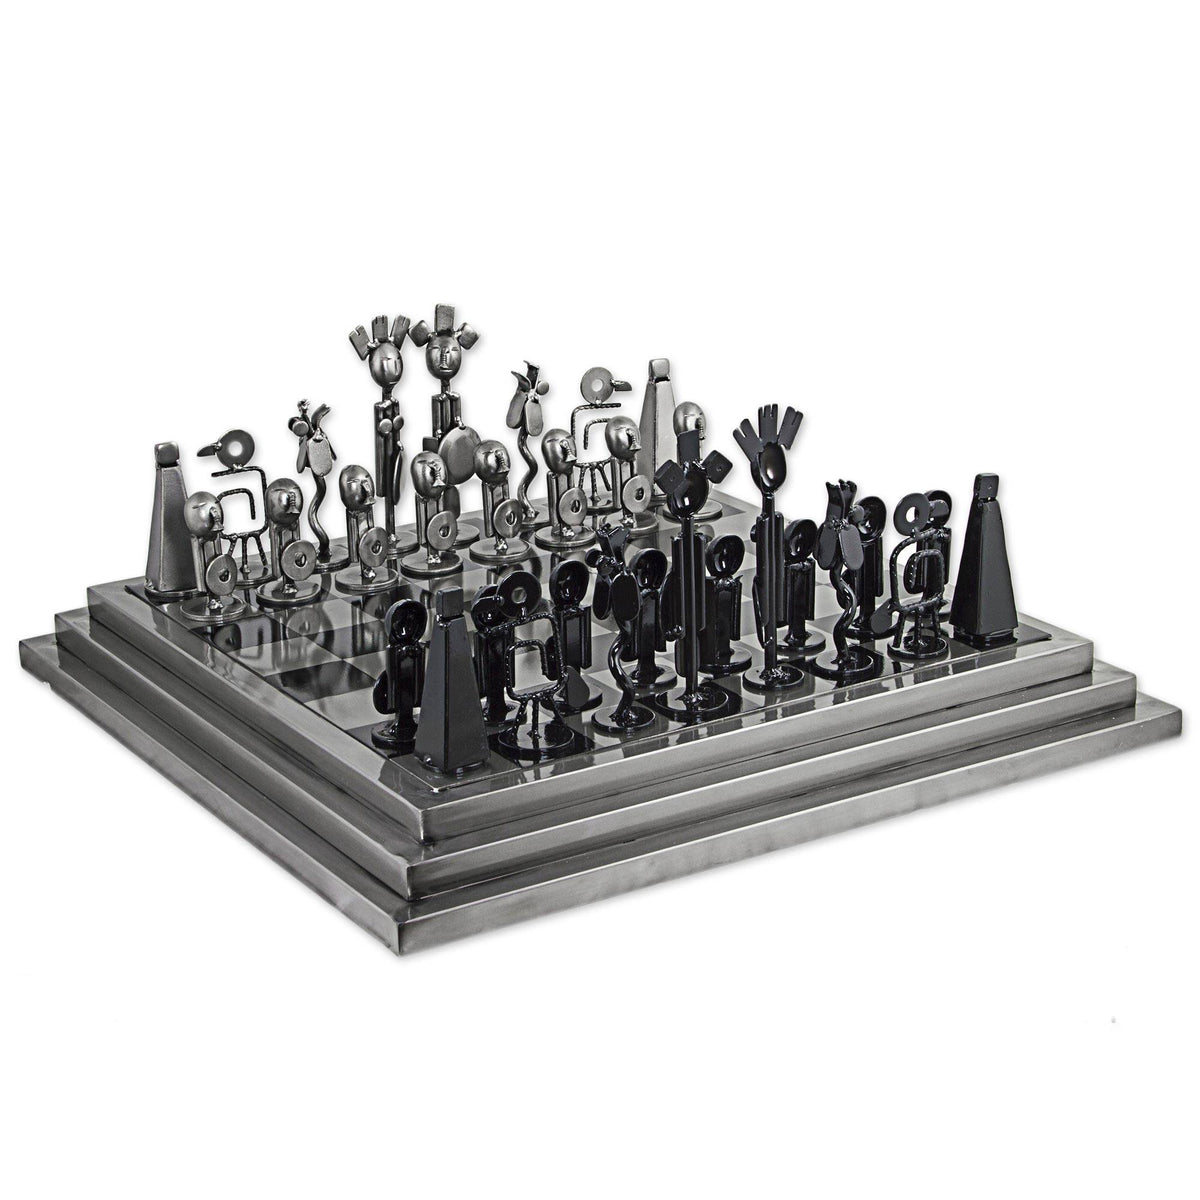 Recycled Auto Parts Pre-Hispanic Battle Rustic Chess Set - Black